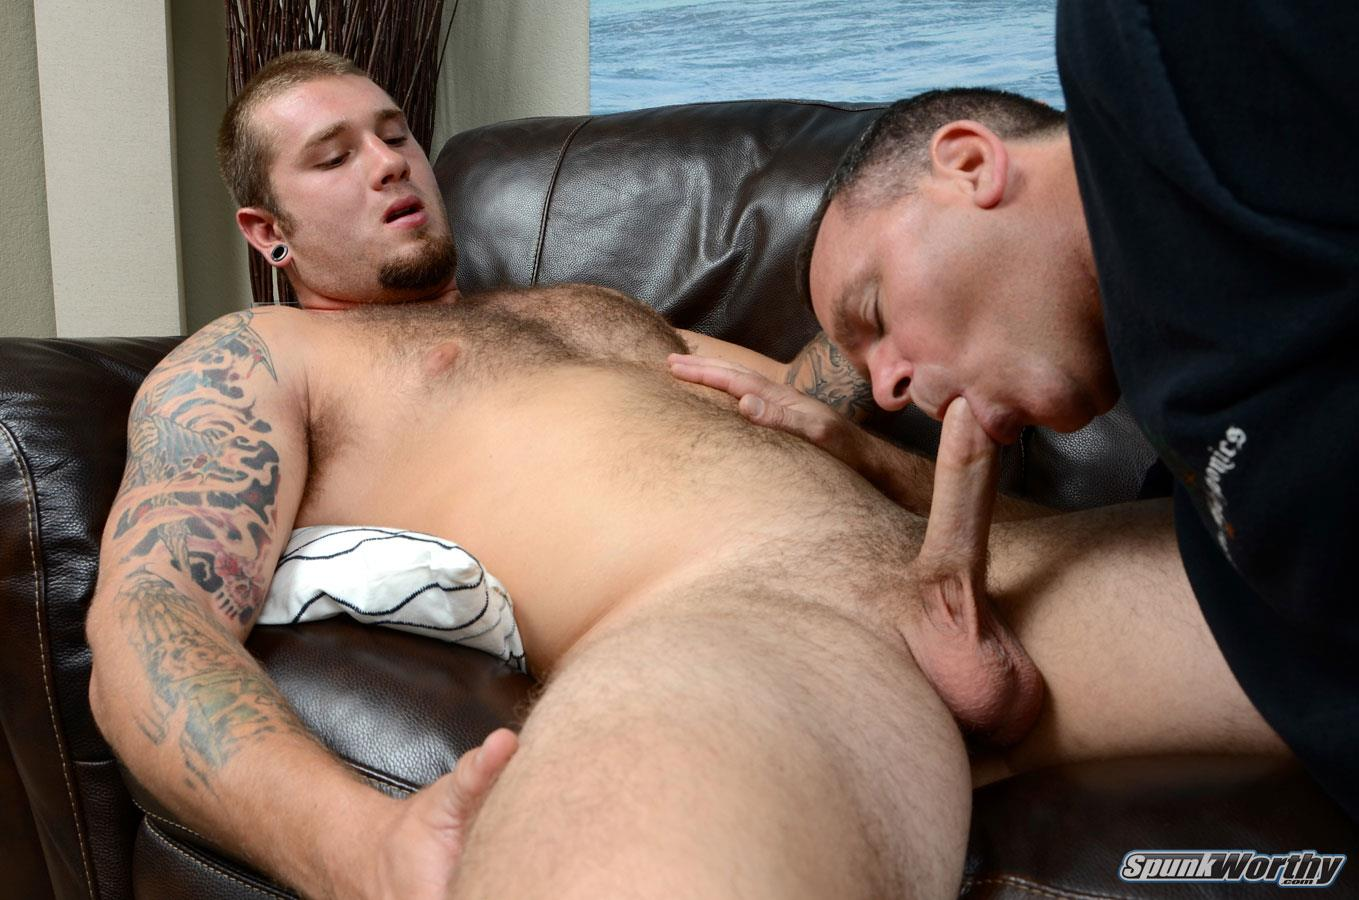 Amateur gay blowjobs first time cameron amp 9